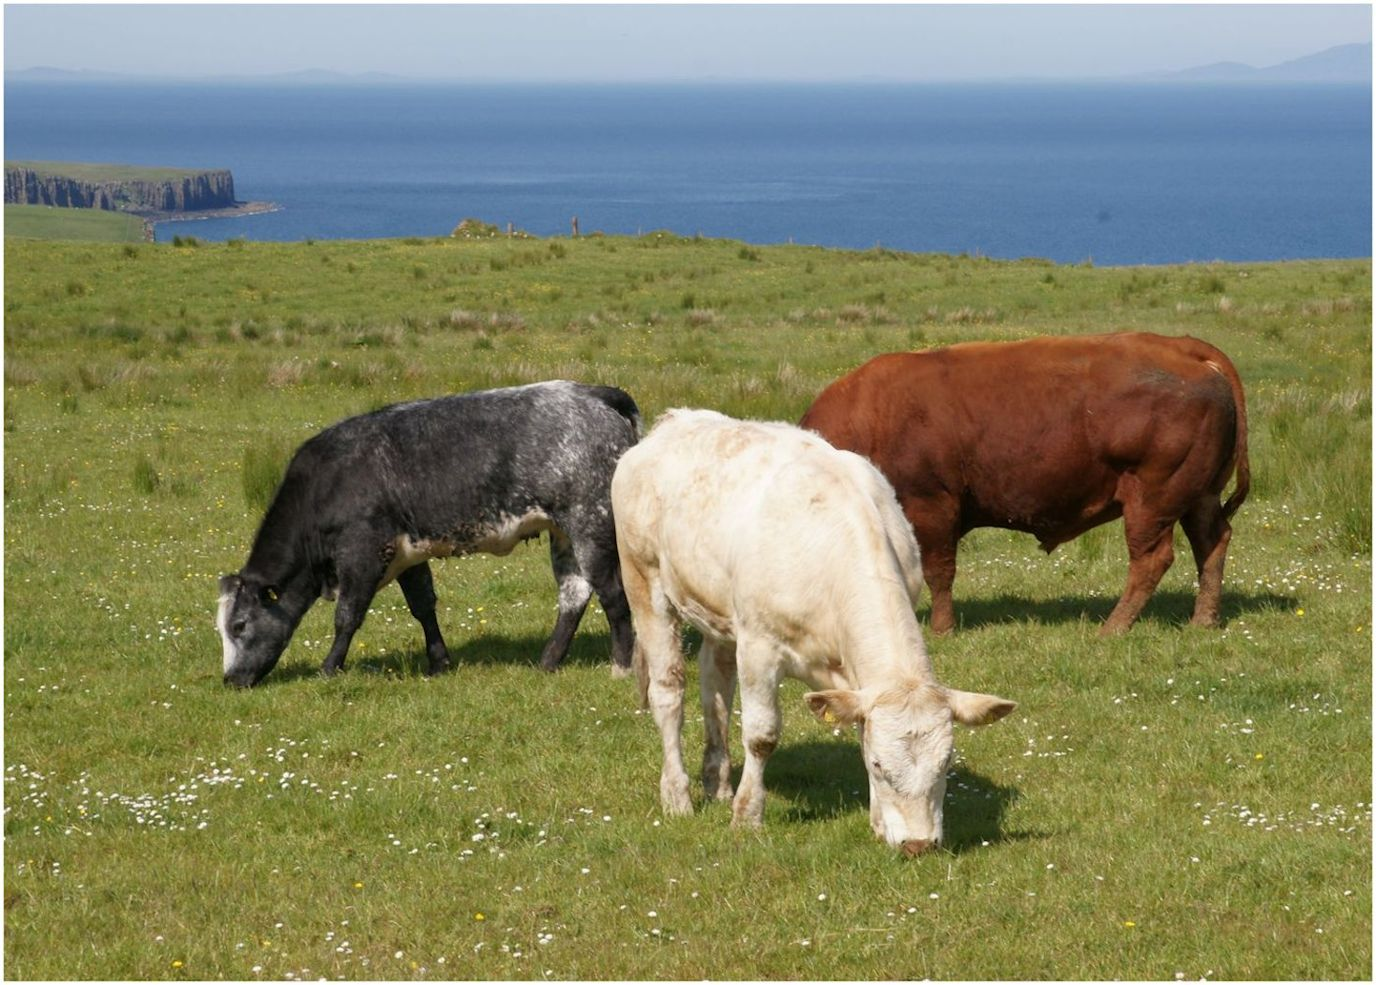 CORNIISH CATTLE  BY THE COAST by Jim Williams.jpg